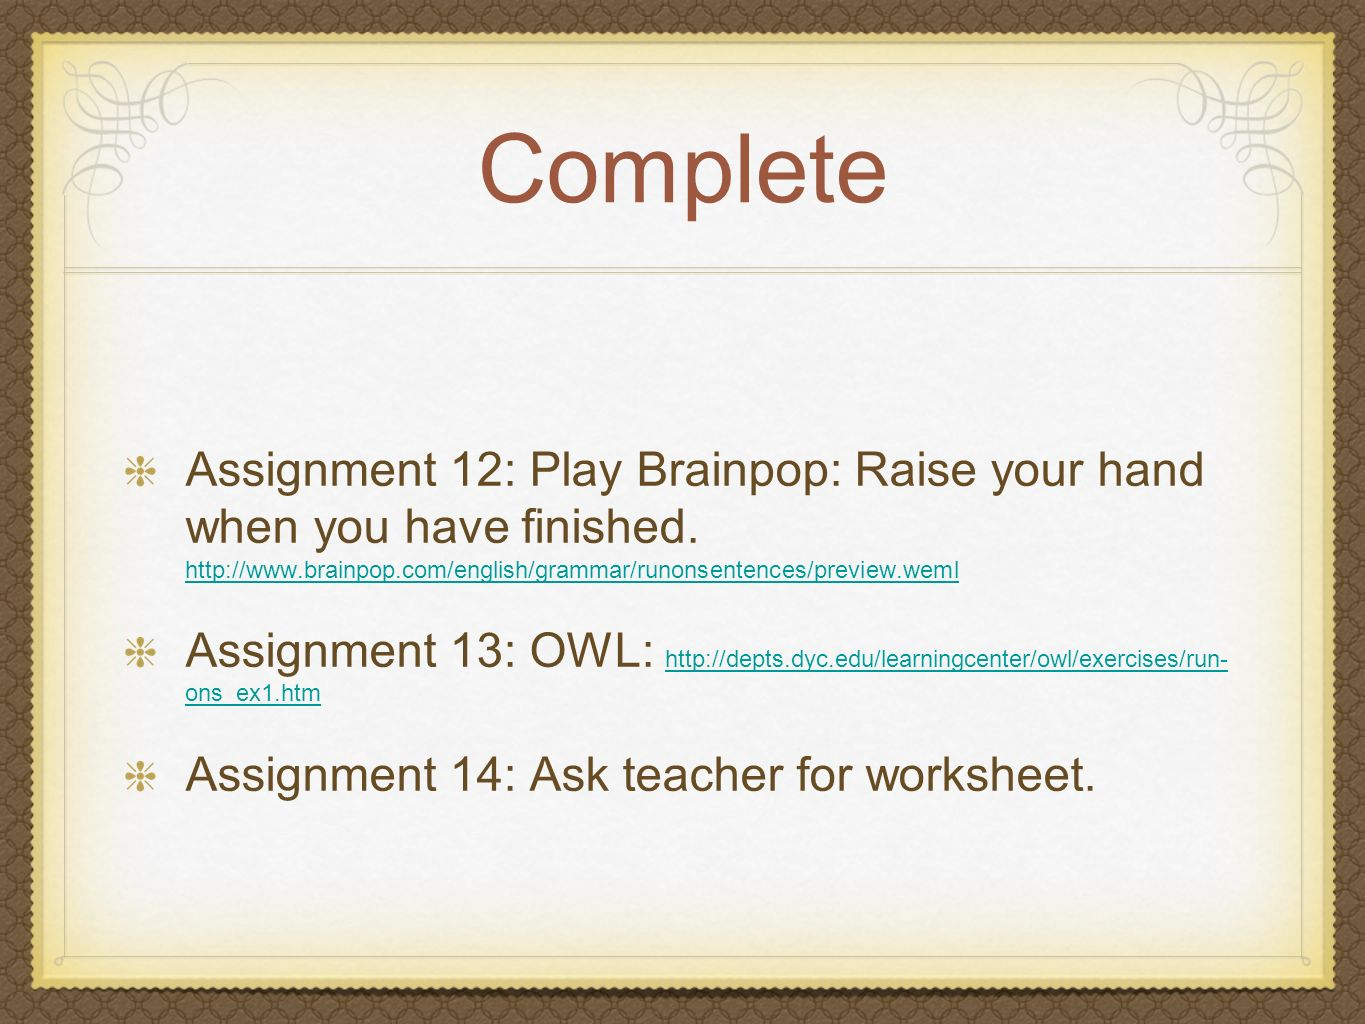 Complete Assignment 12: Play Brainpop: Raise your hand when you have finished.